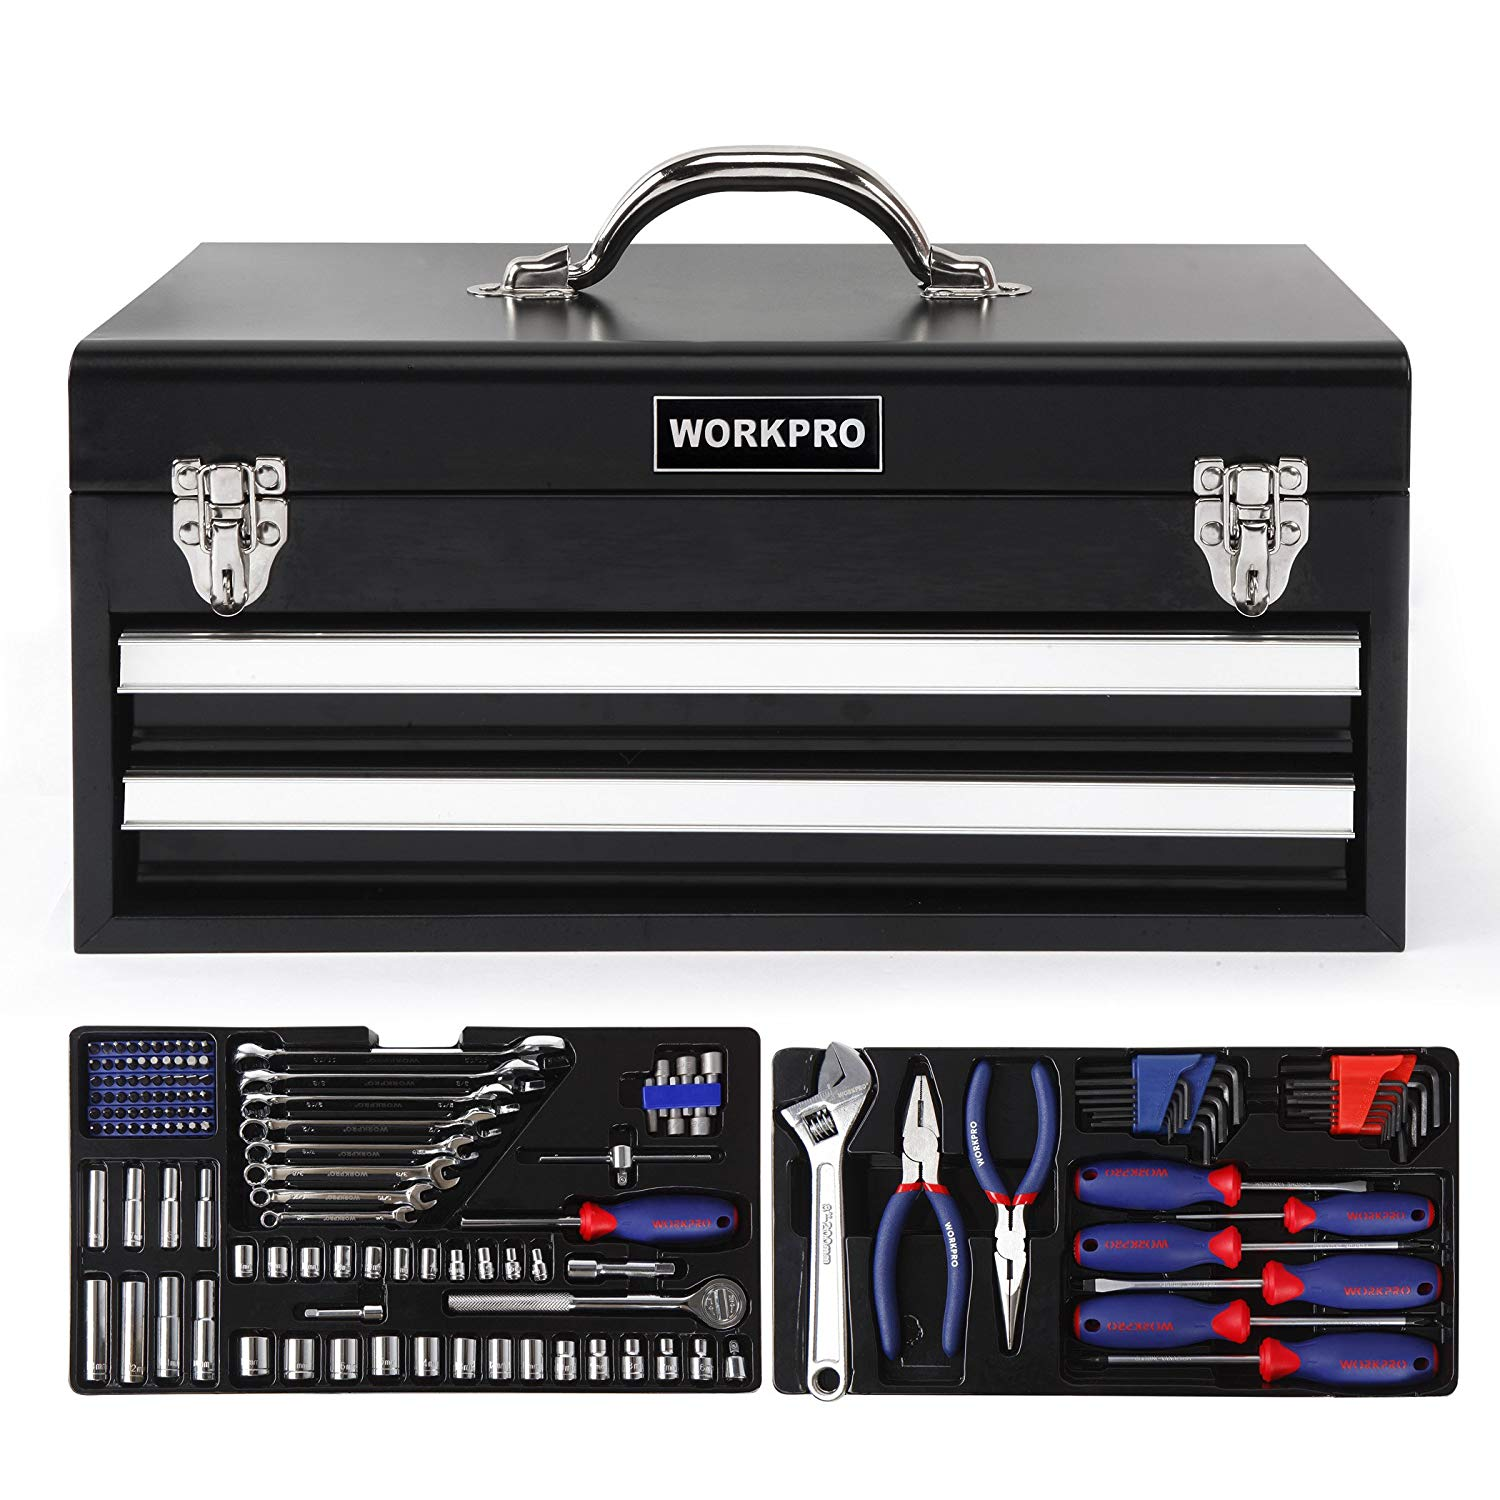 WORKPRO W009044A 408-Piece Mechanics Tool Set with 3-Drawer Heavy Duty Metal Box